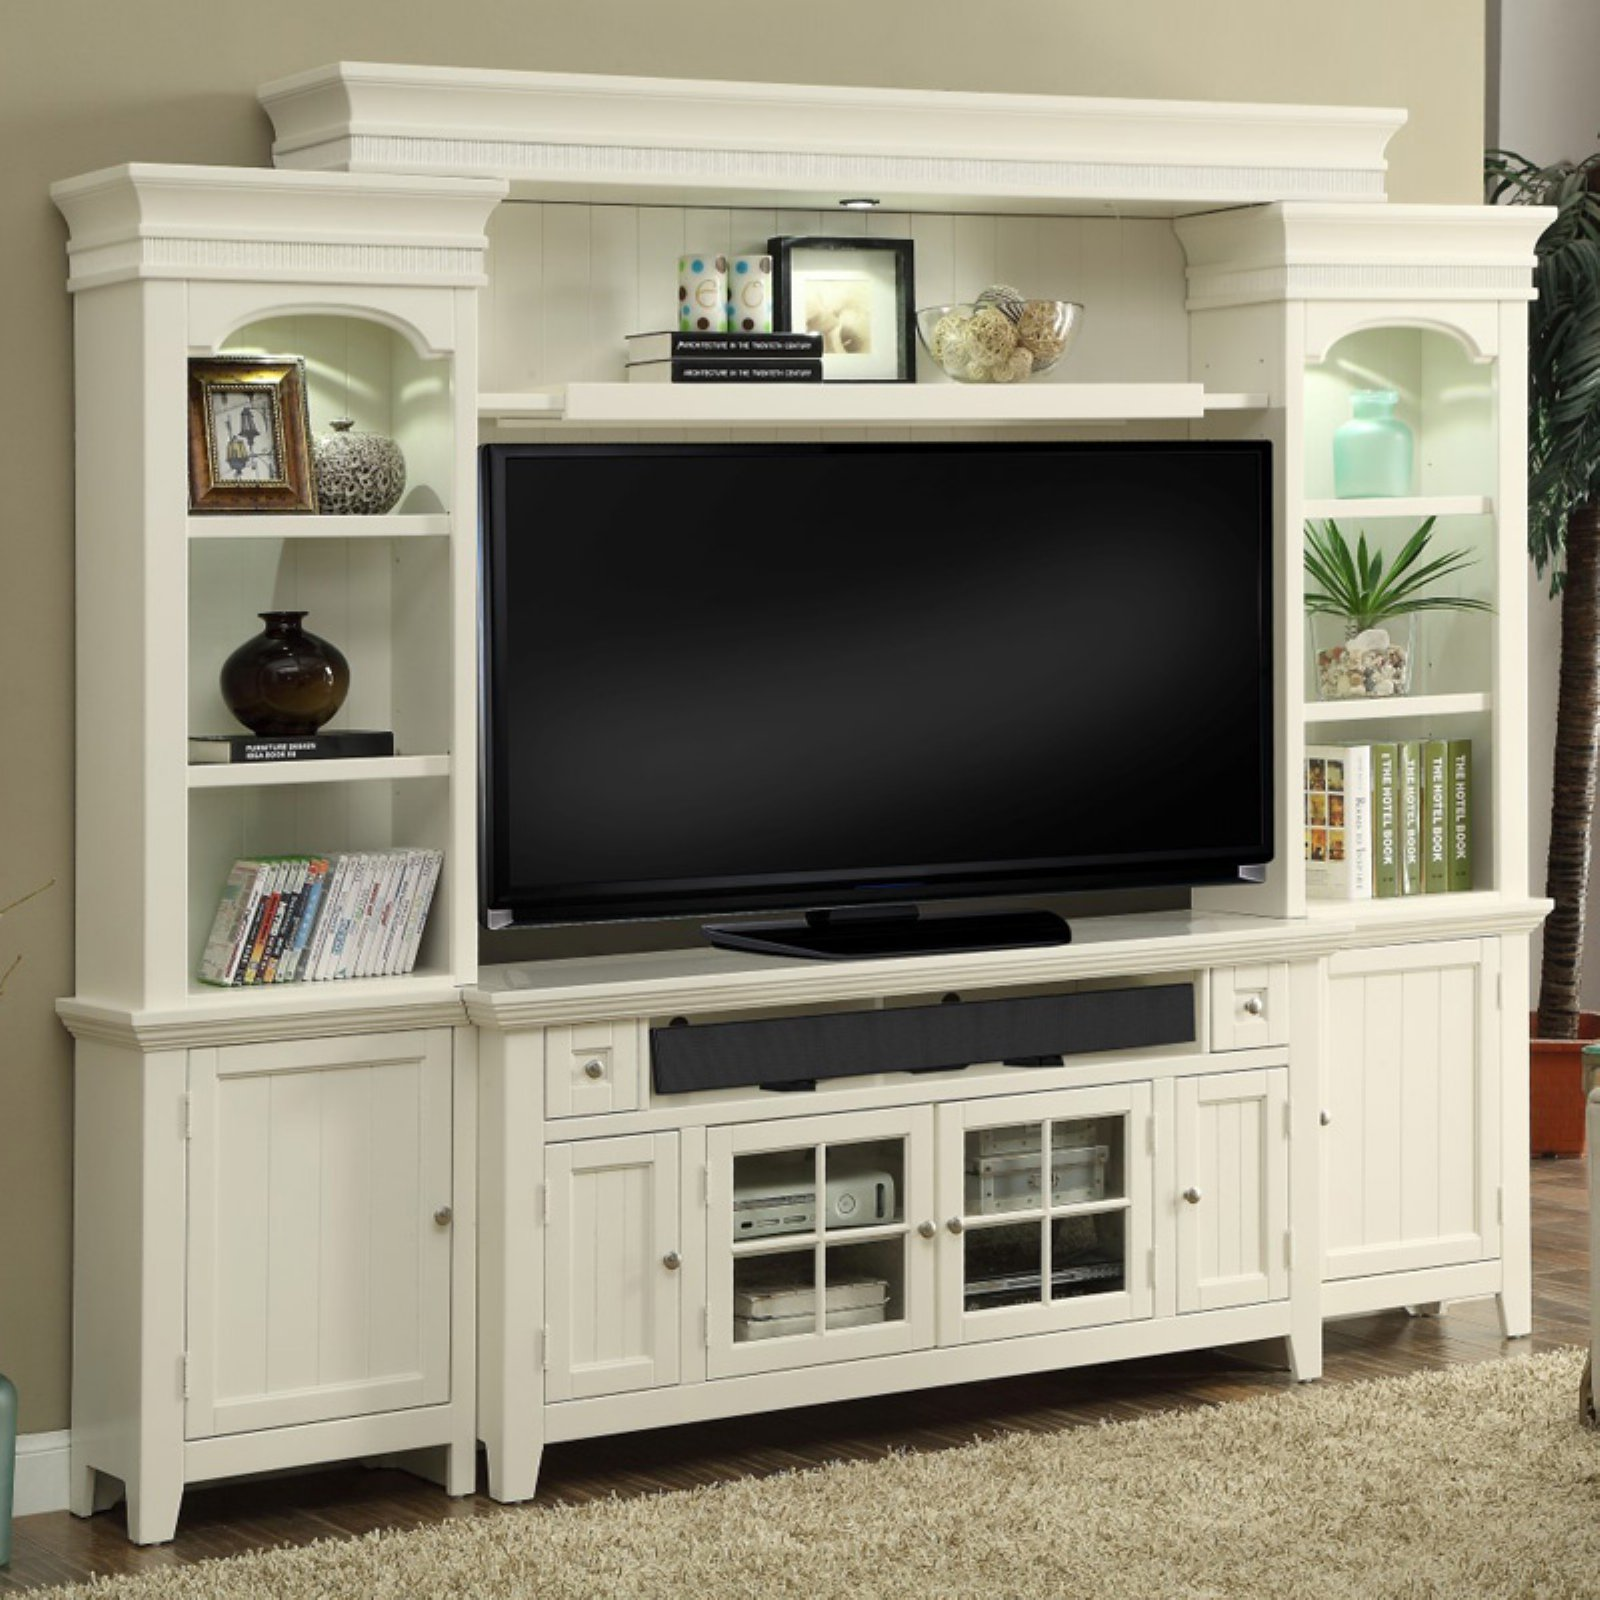 Parker House Tidewater 62 in. Entertainment Center